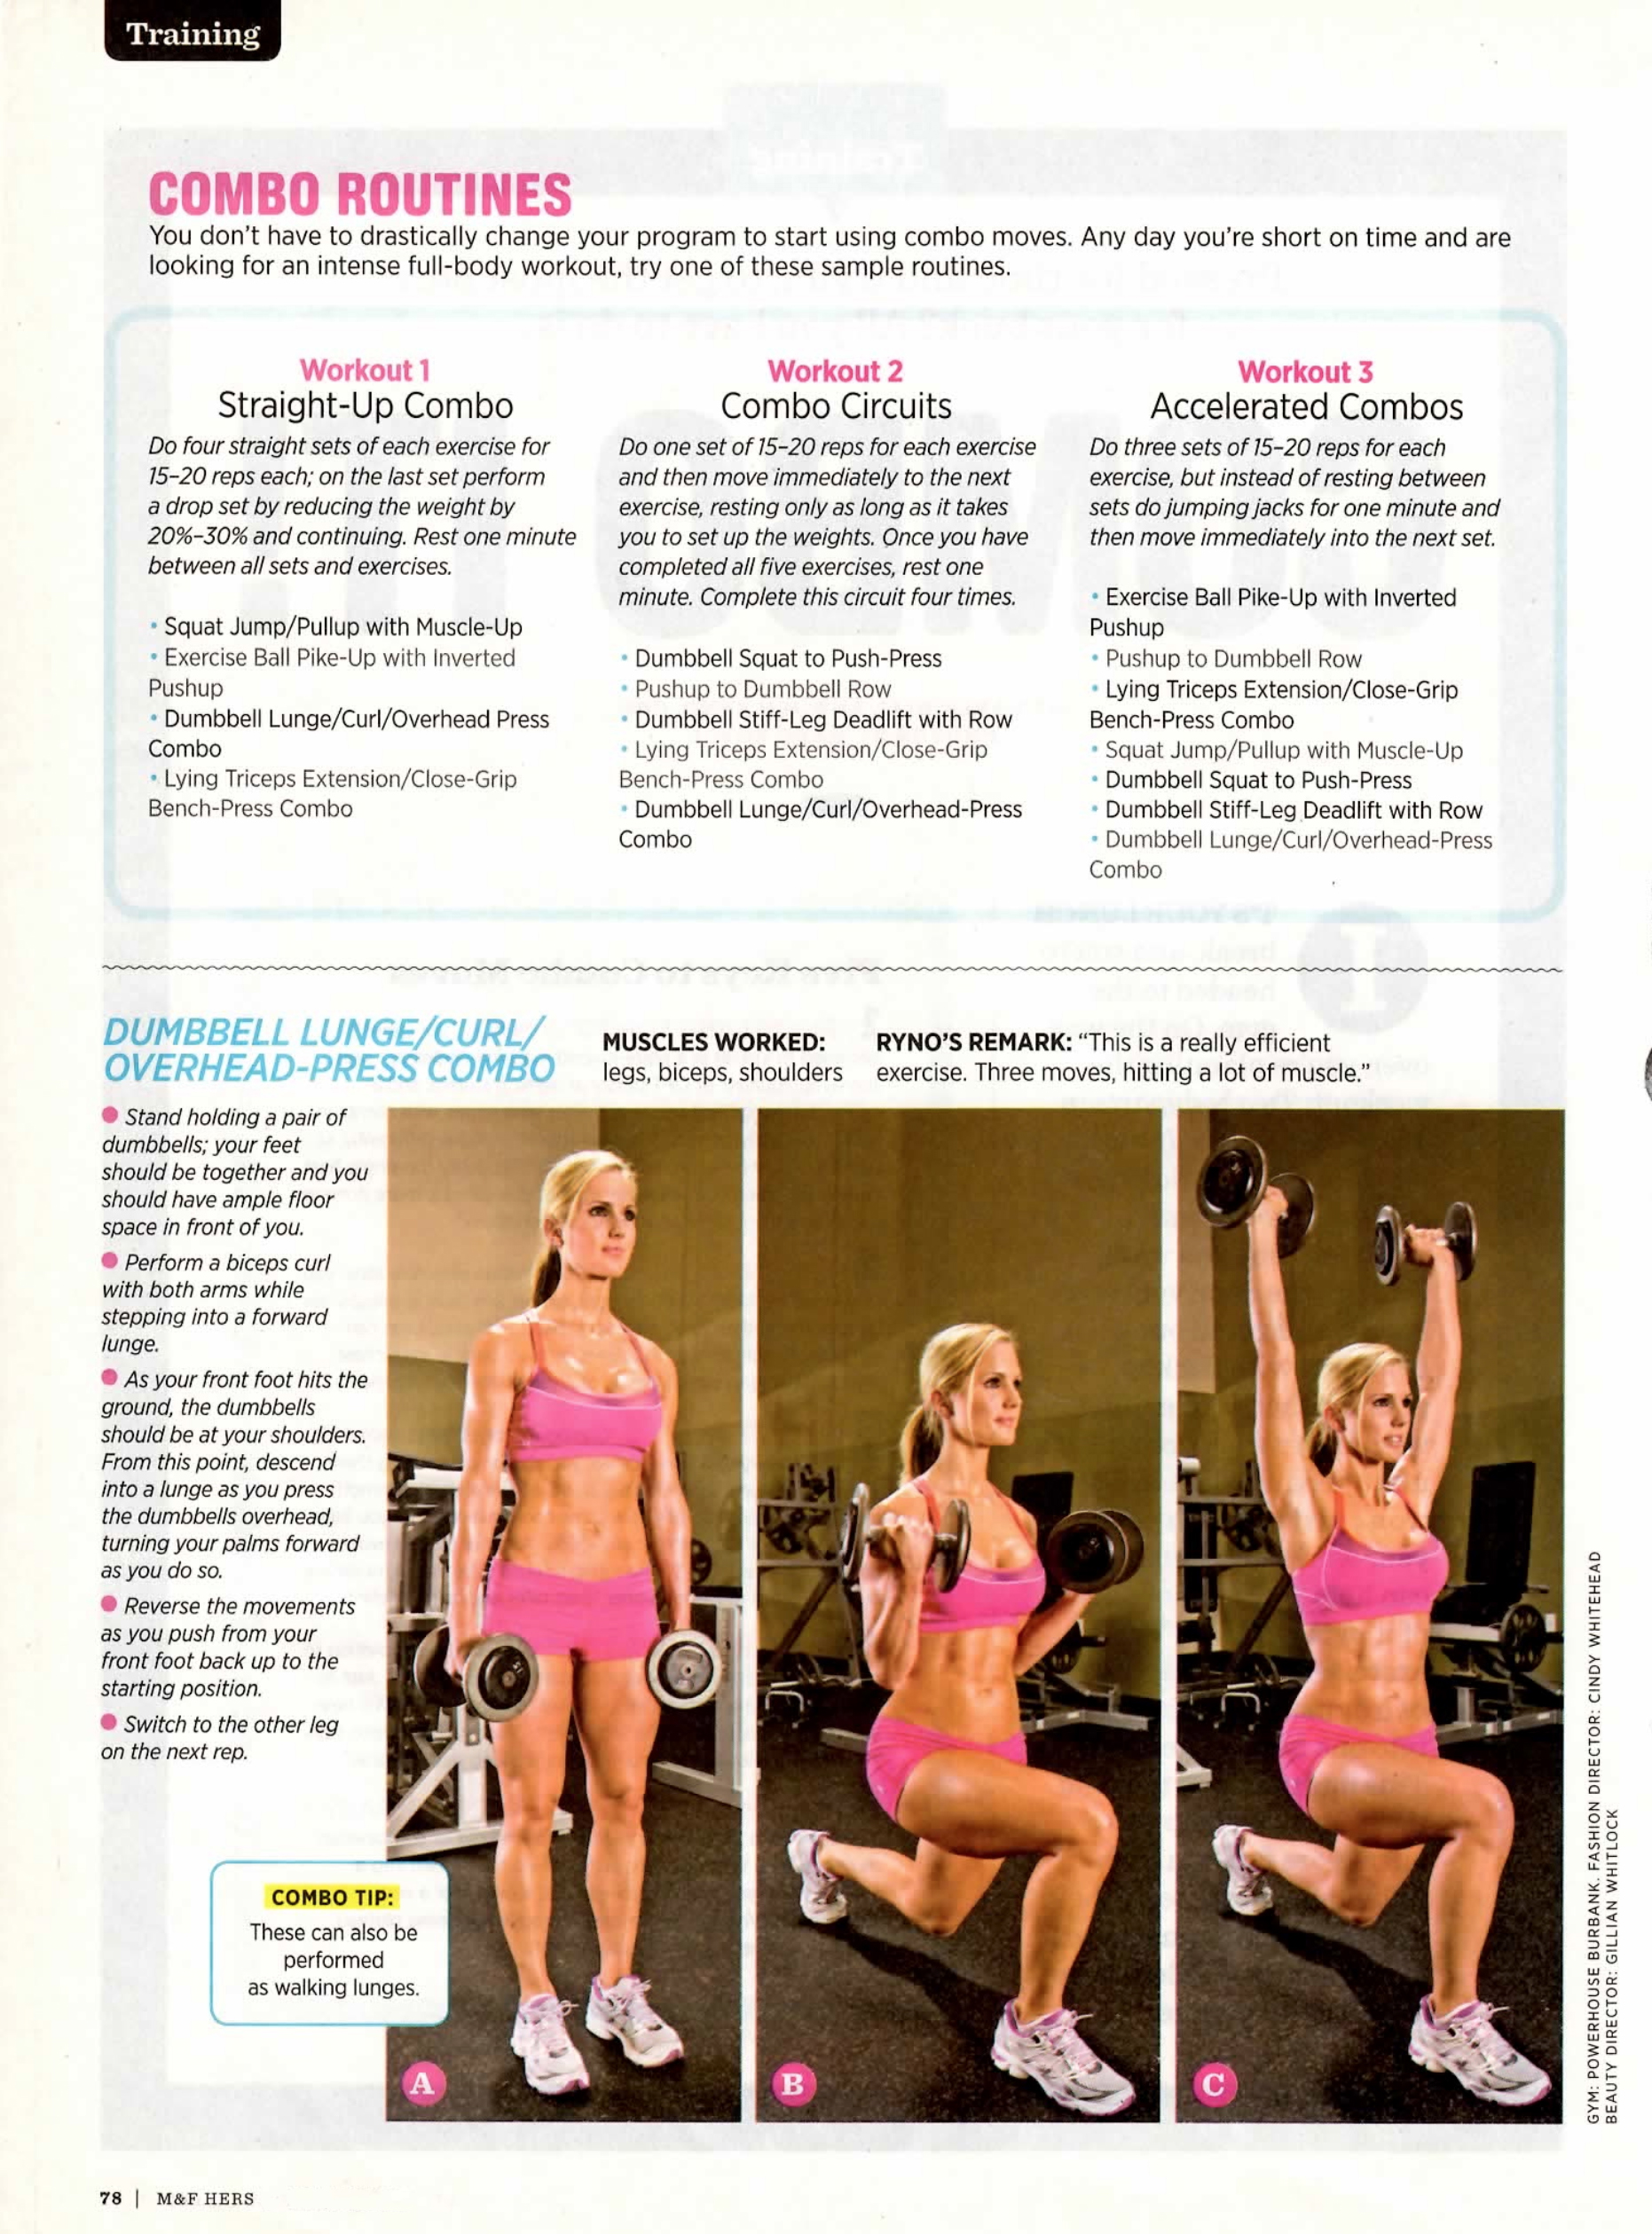 Jim Ryno Muscle and Fitness Hers 1.jpg